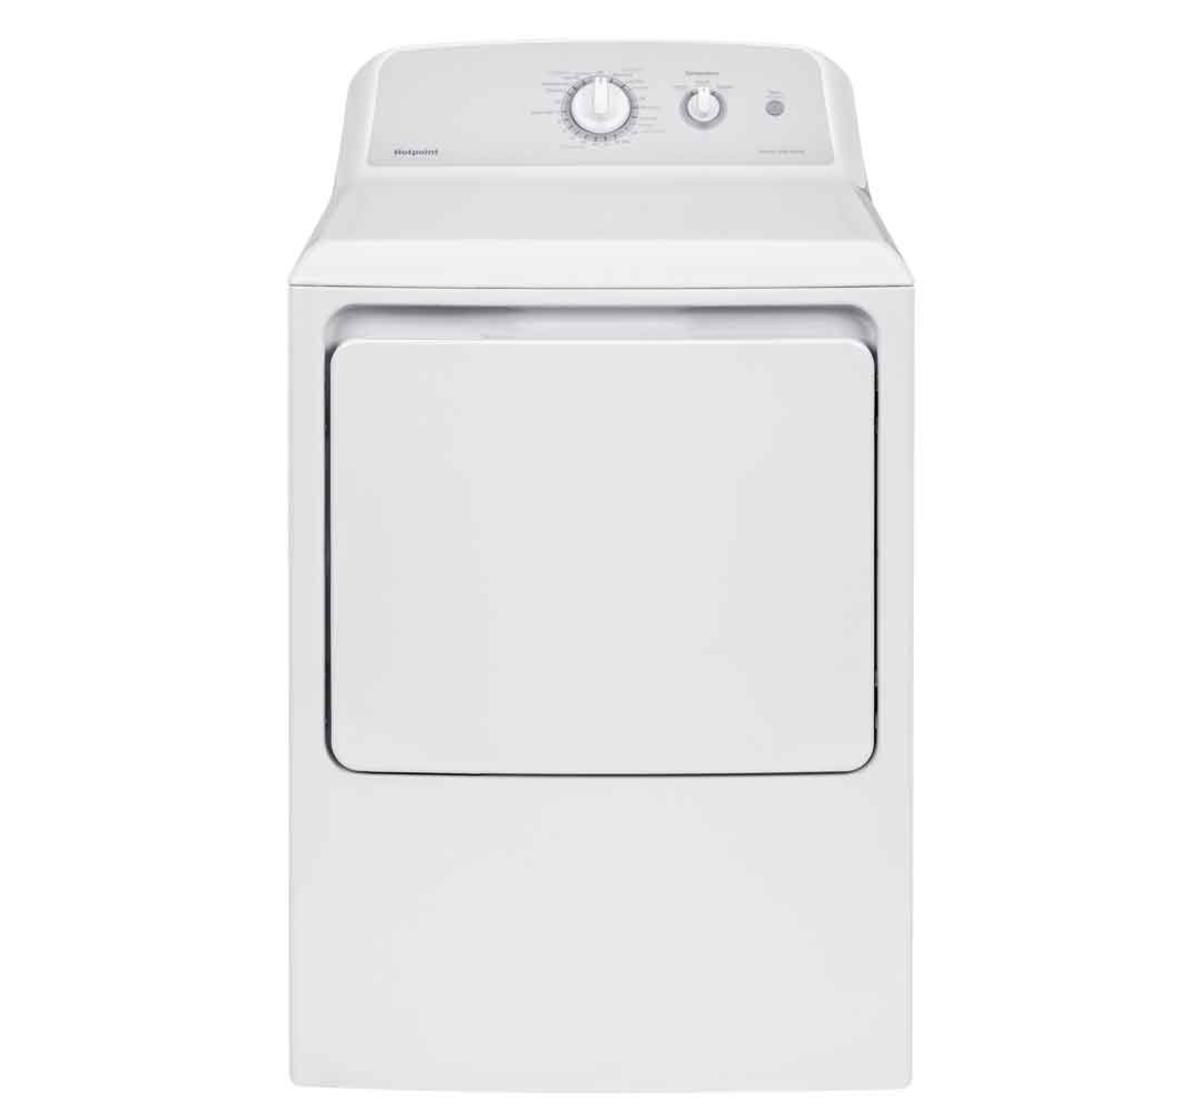 Picture of HOTPOINT BY G.E. ELECTRIC DRYER